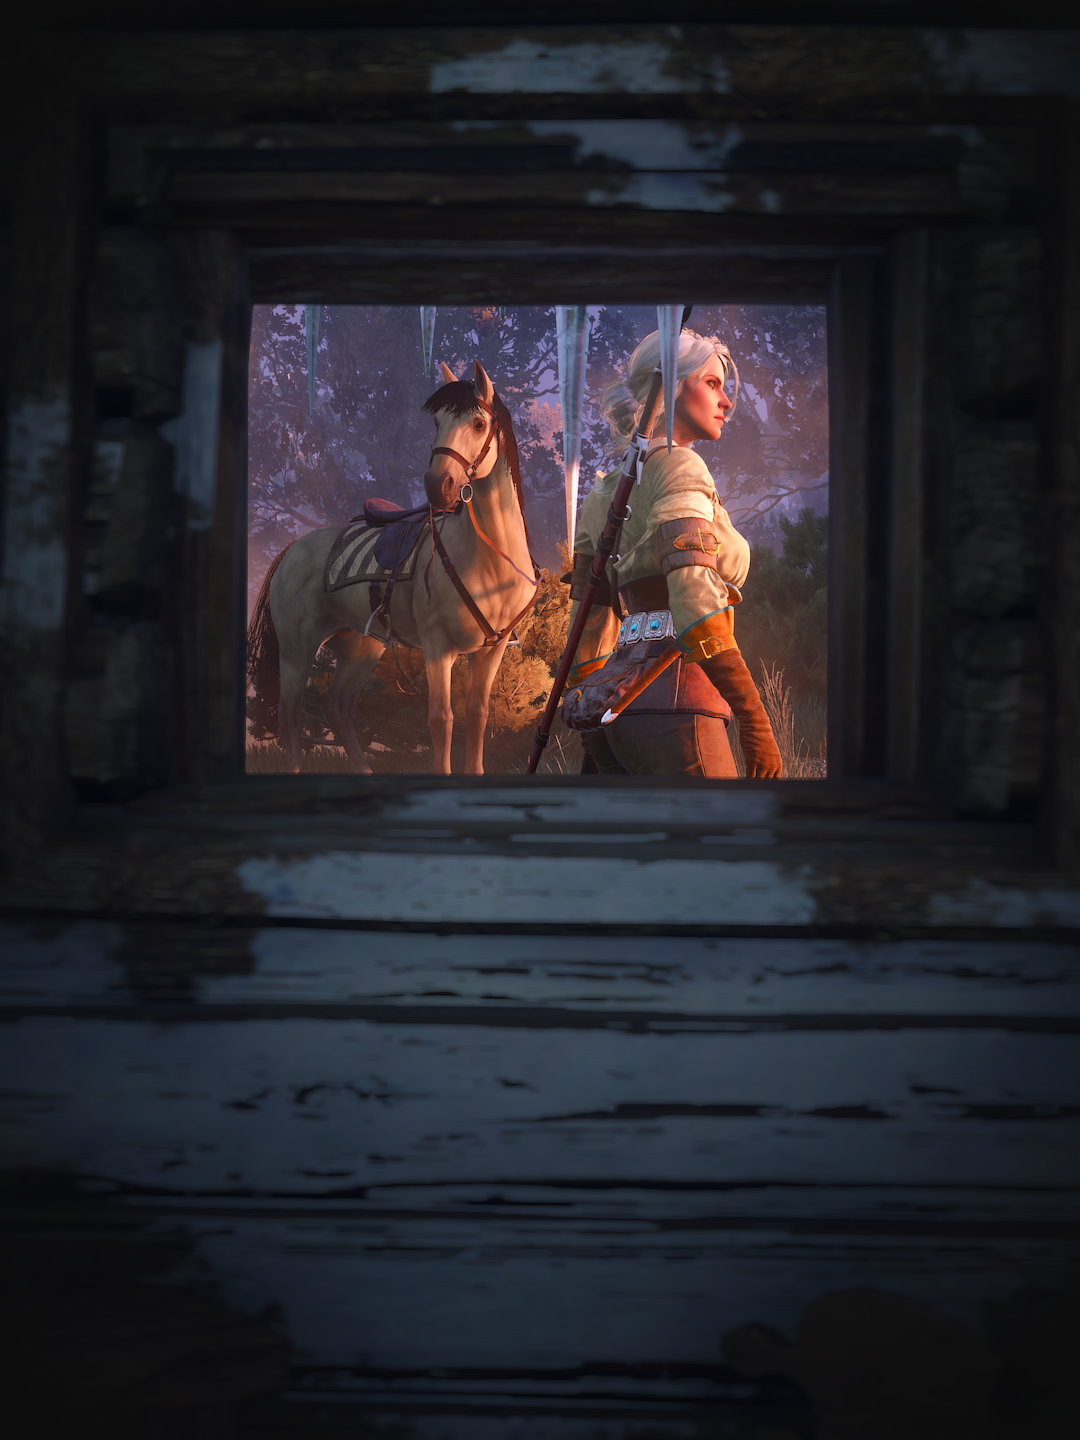 youvebeenframed.png - Witcher 3: Wild Hunt, the